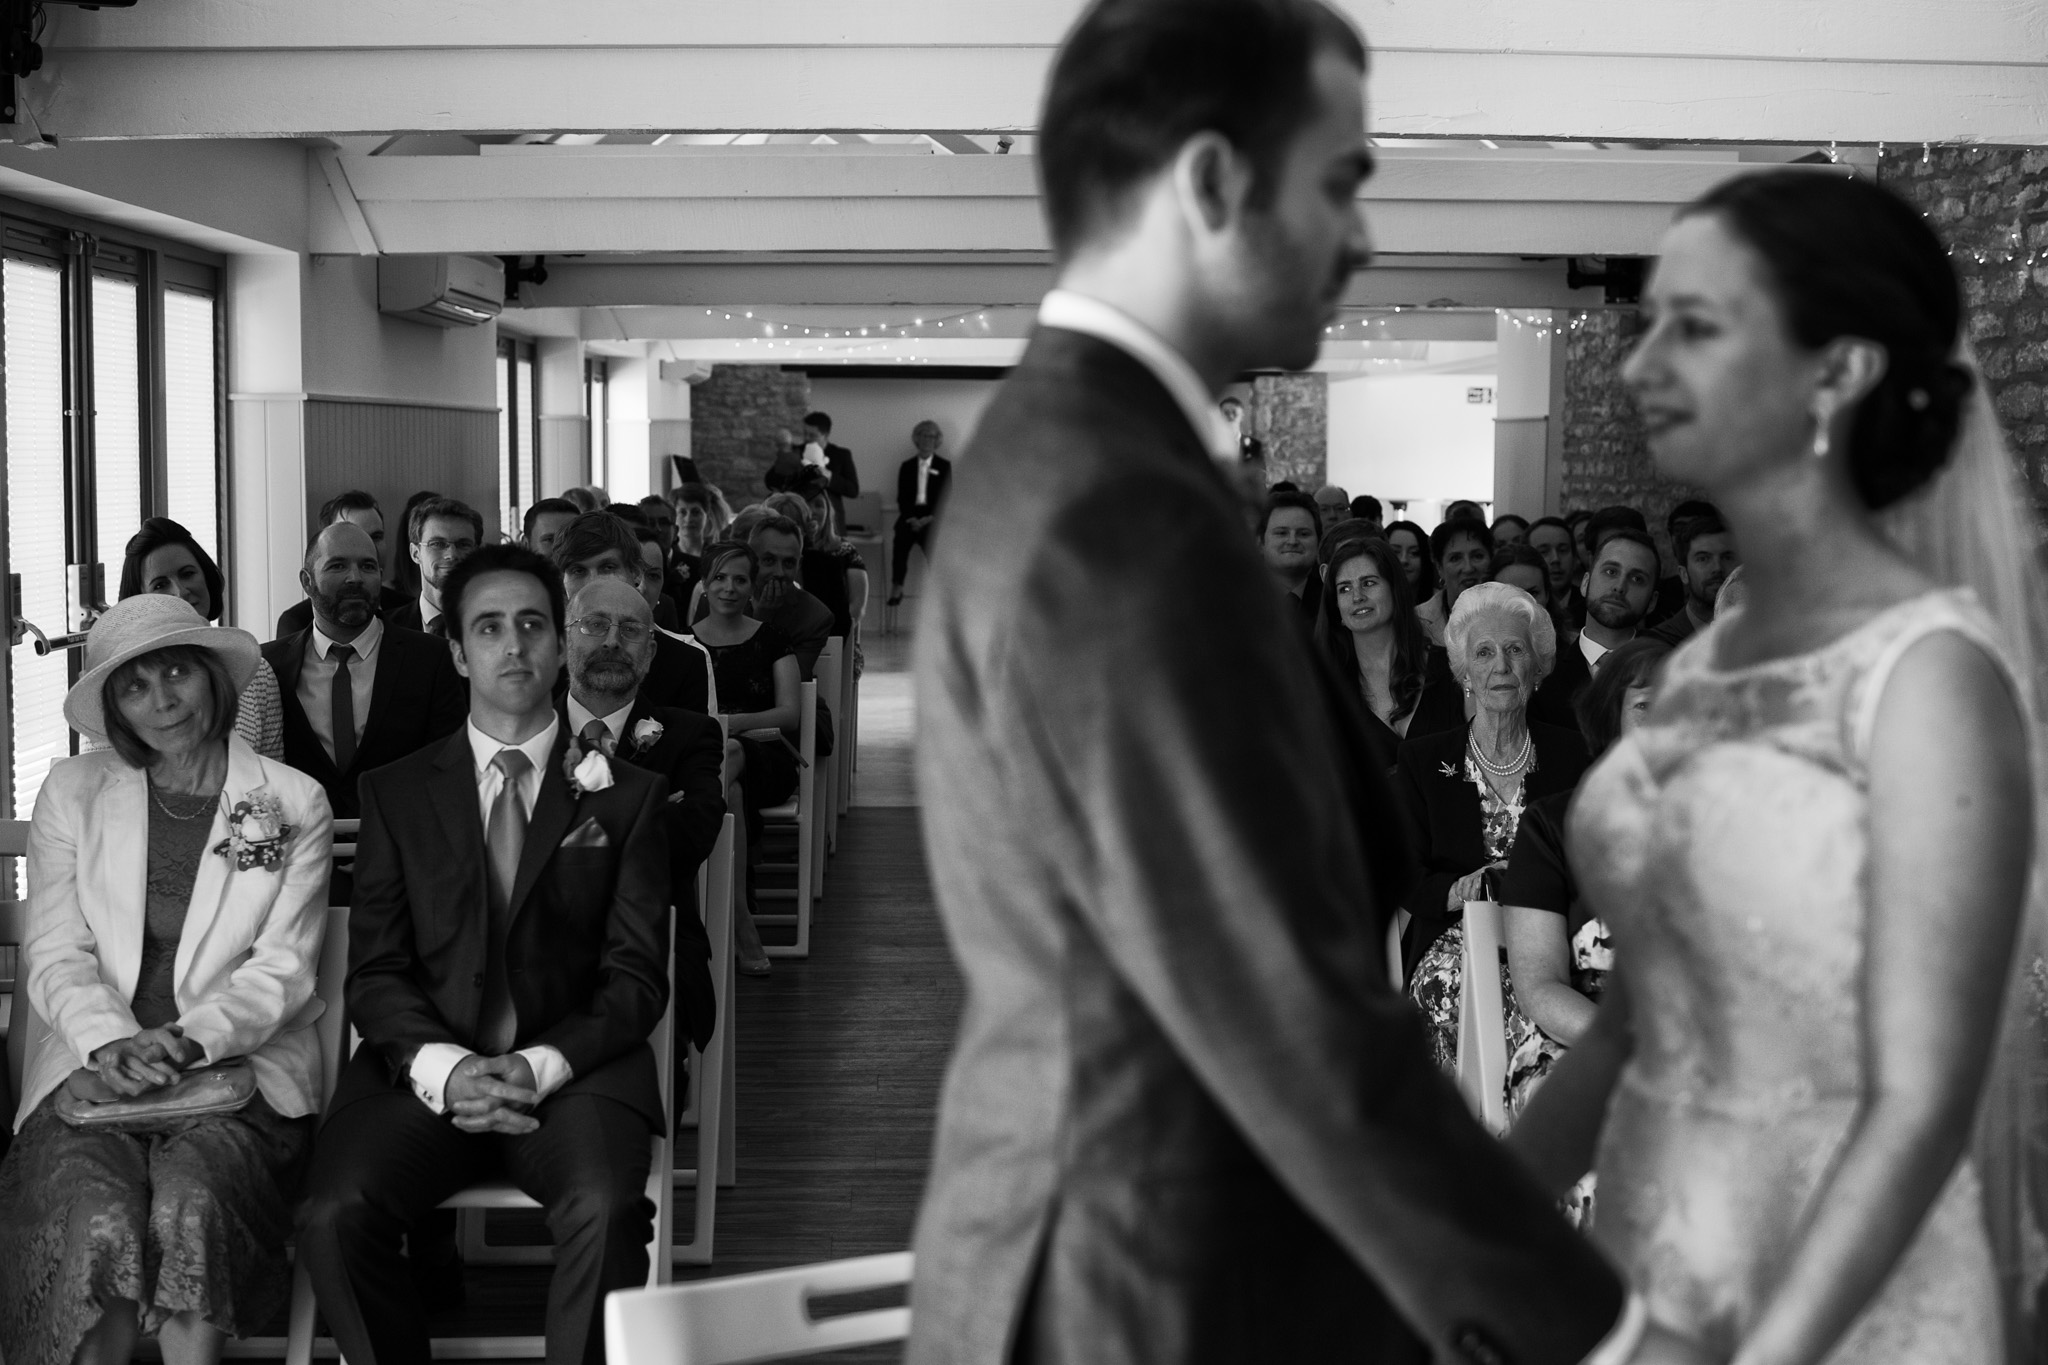 Mark_Barnes_Northern_Ireland_Wedding_Photography_Jack_and_Claire-17.jpg